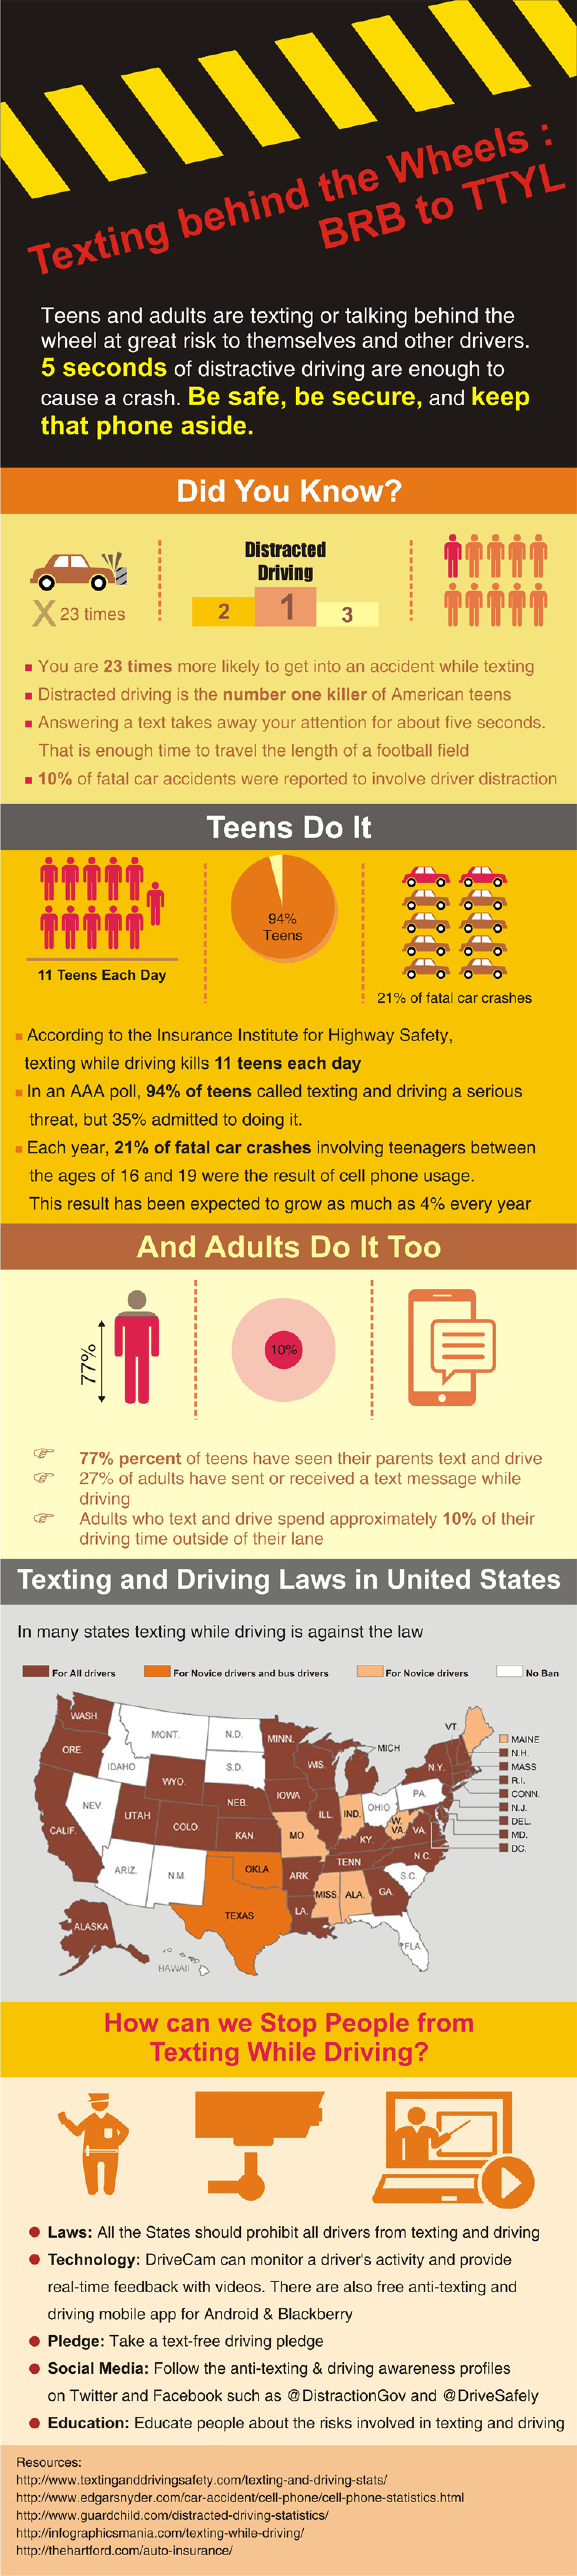 Texting Behind The Wheels: BRB to TTYL Infographic